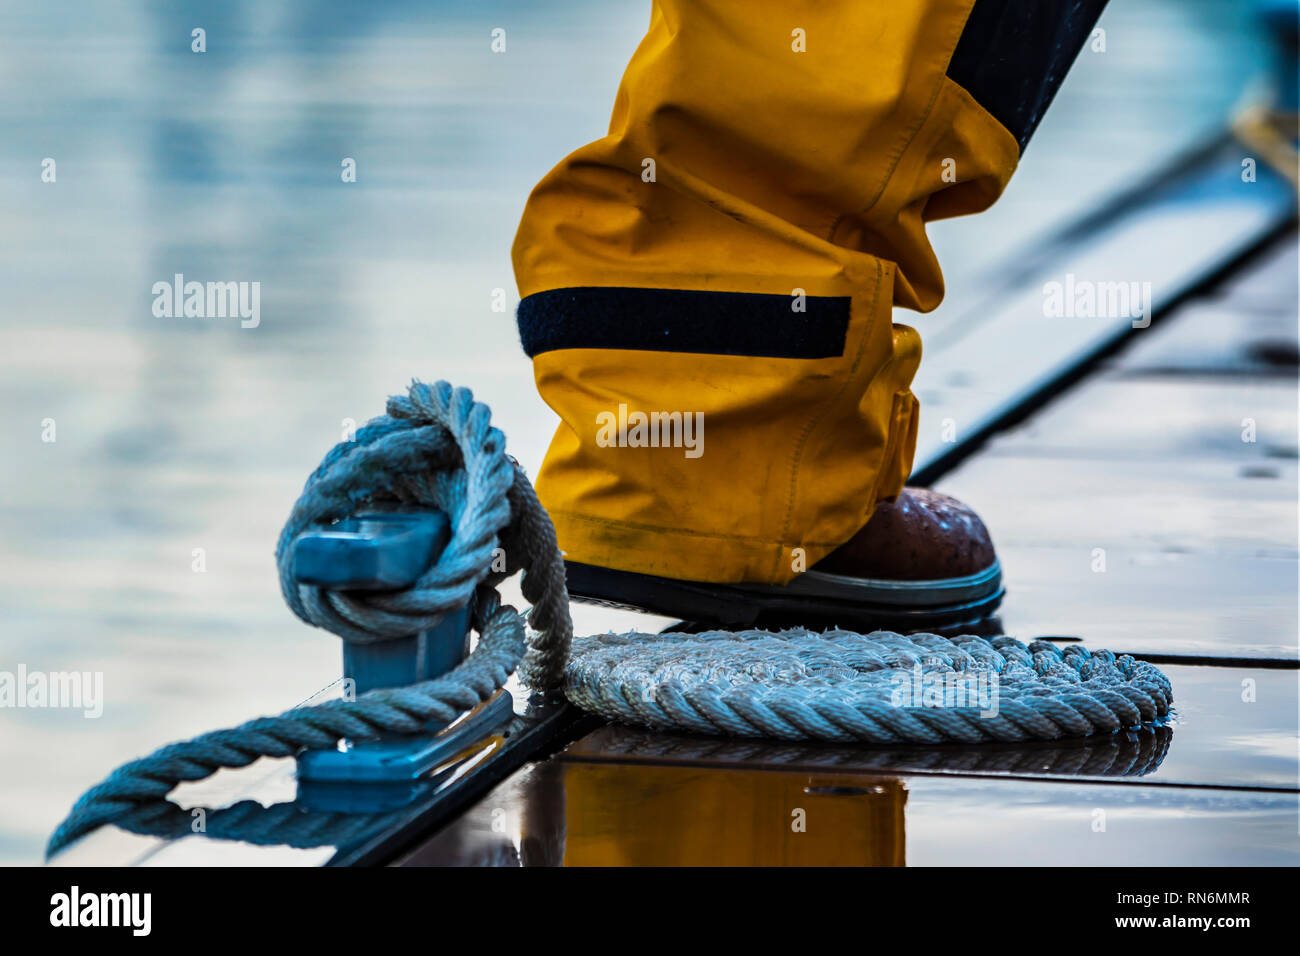 Coiled mooring line tied around cleat on a pontoon at rainy evening. - Stock Image